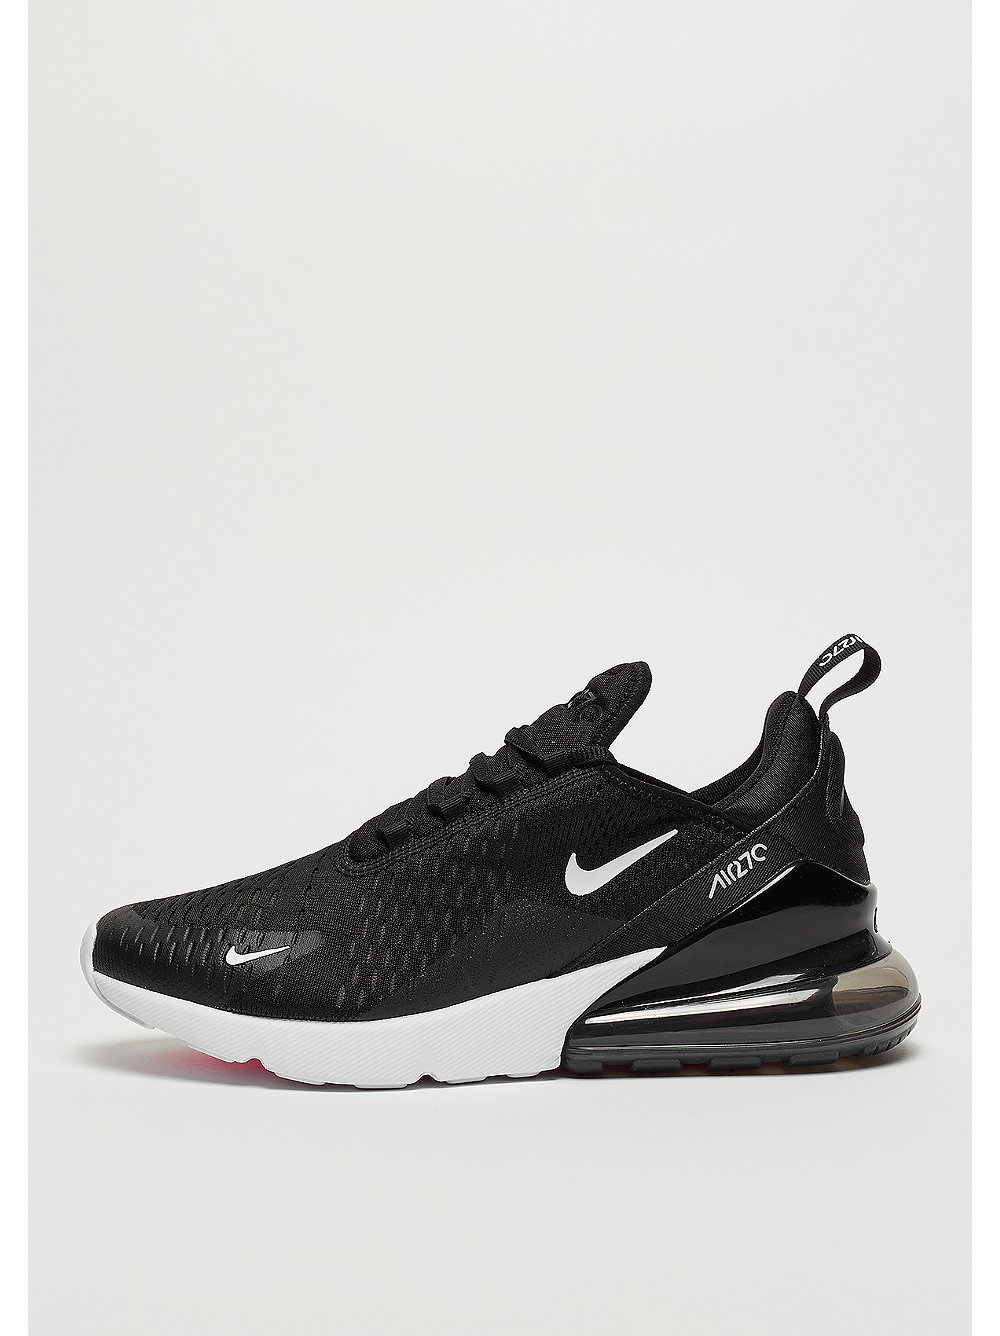 Air Max 270 black/anthracite/white/solar red